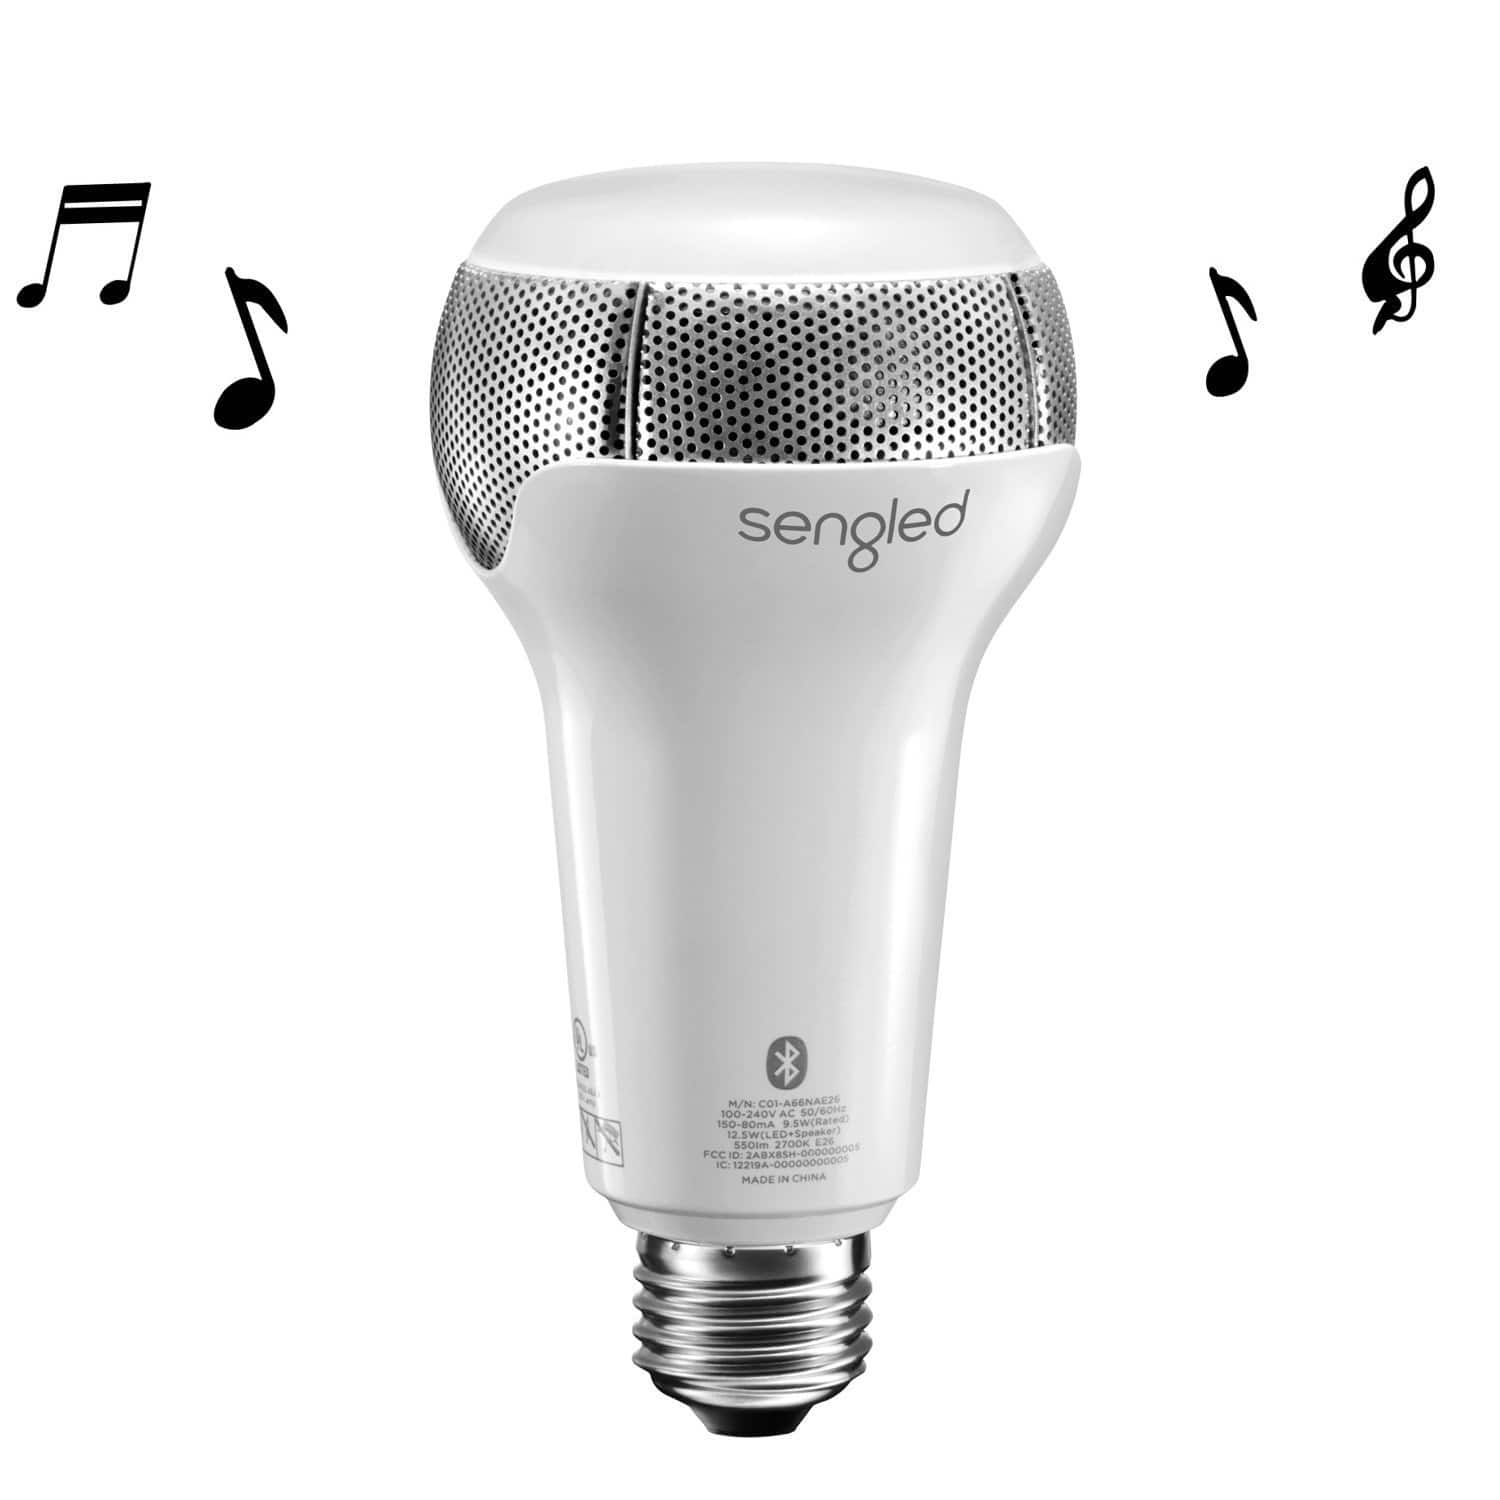 Dimmable 45Weq LED Light Bulb with BT Speaker + App, Alexa compatible -- $18